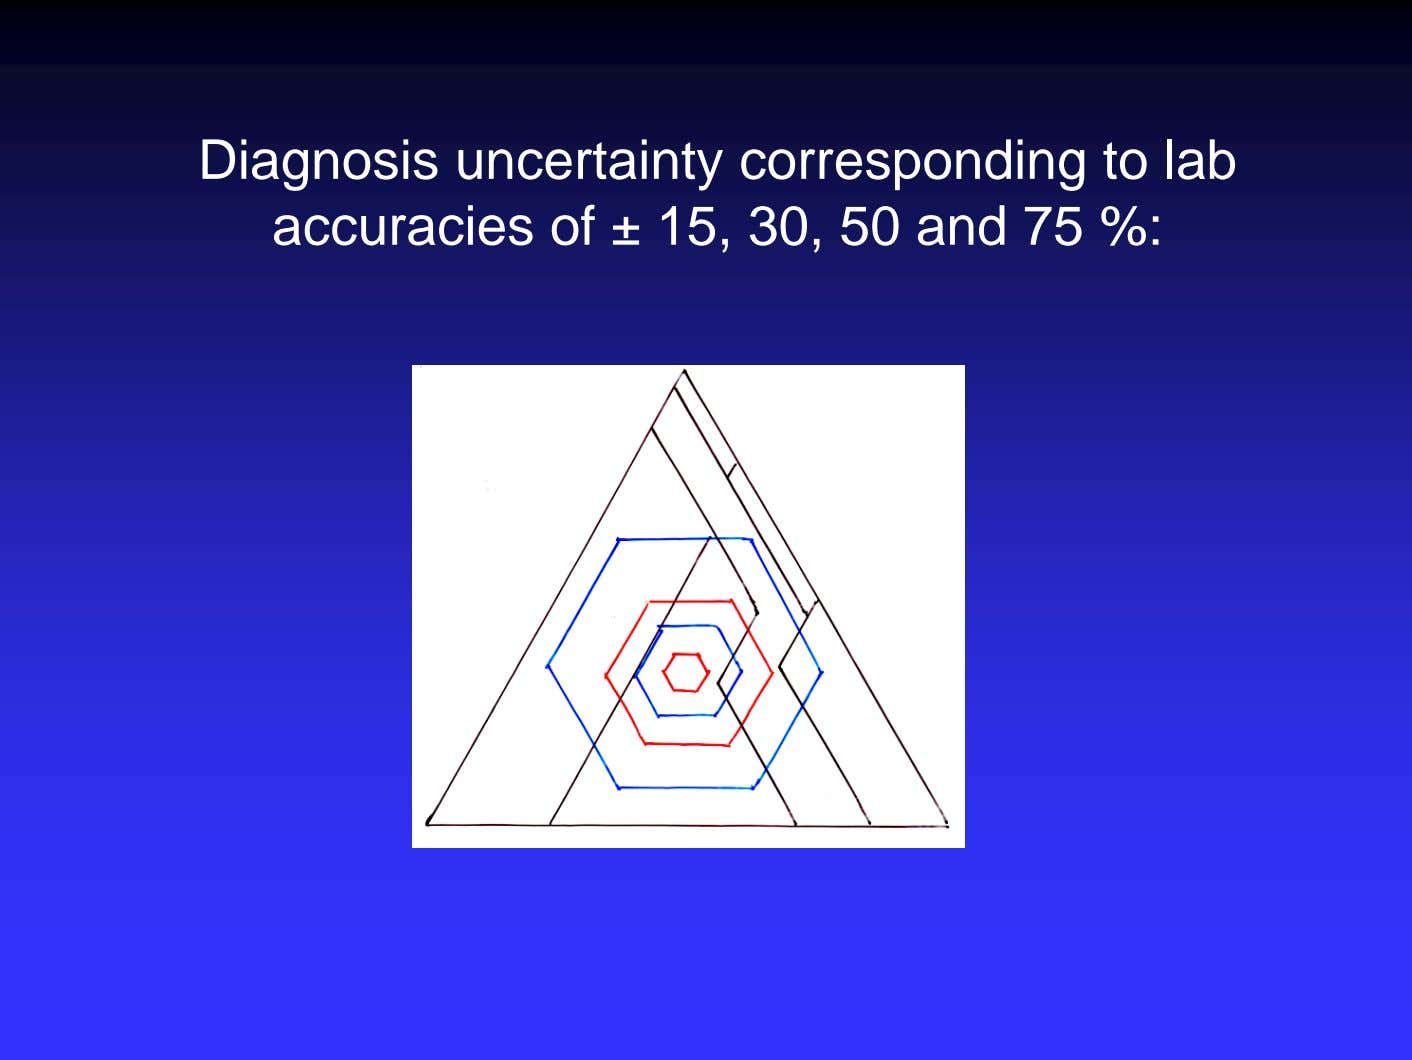 Diagnosis uncertainty corresponding to lab accuracies of ± 15, 30, 50 and 75 %: